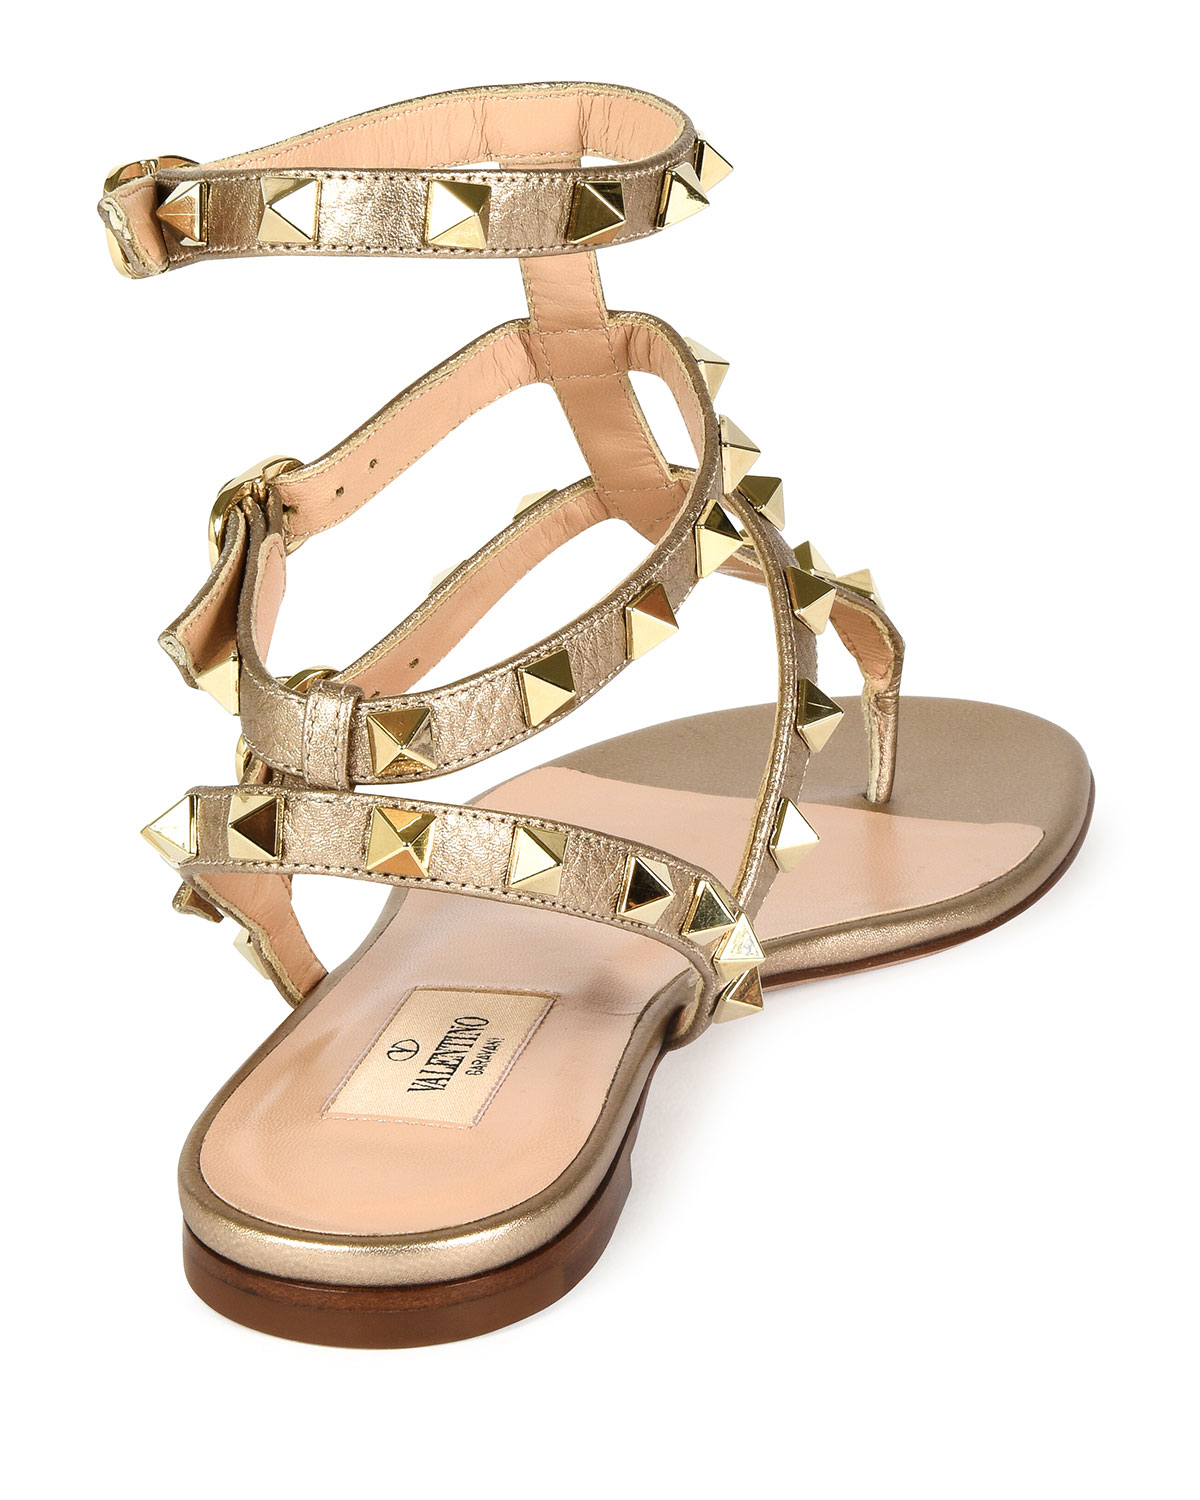 c7f572437d8 Gallery. Previously sold at  Bergdorf Goodman · Women s Gladiator Sandals  Women s Valentino ...